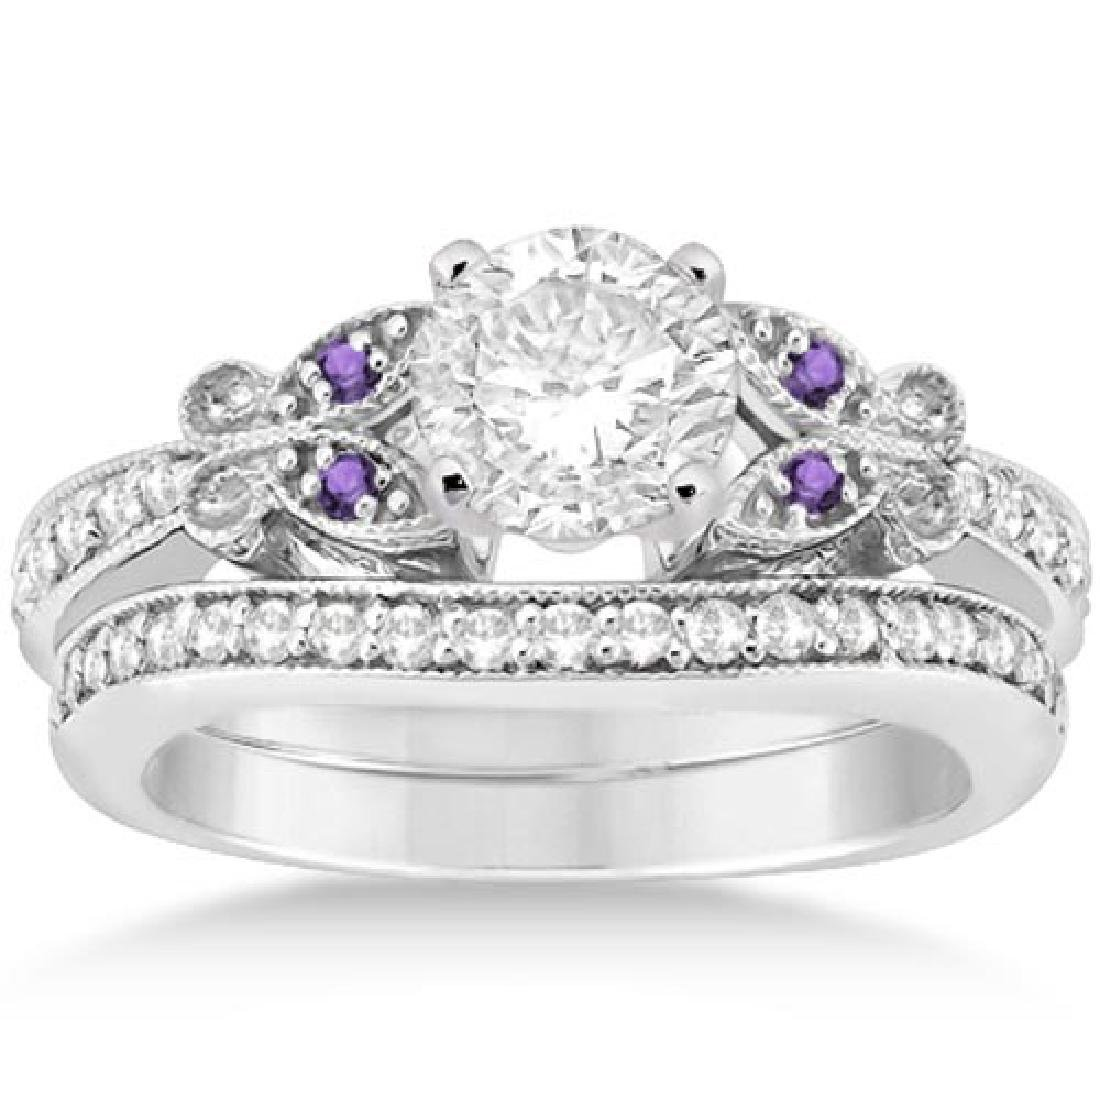 Diamond and Amethyst Bridal ring Setting 14k White Gol